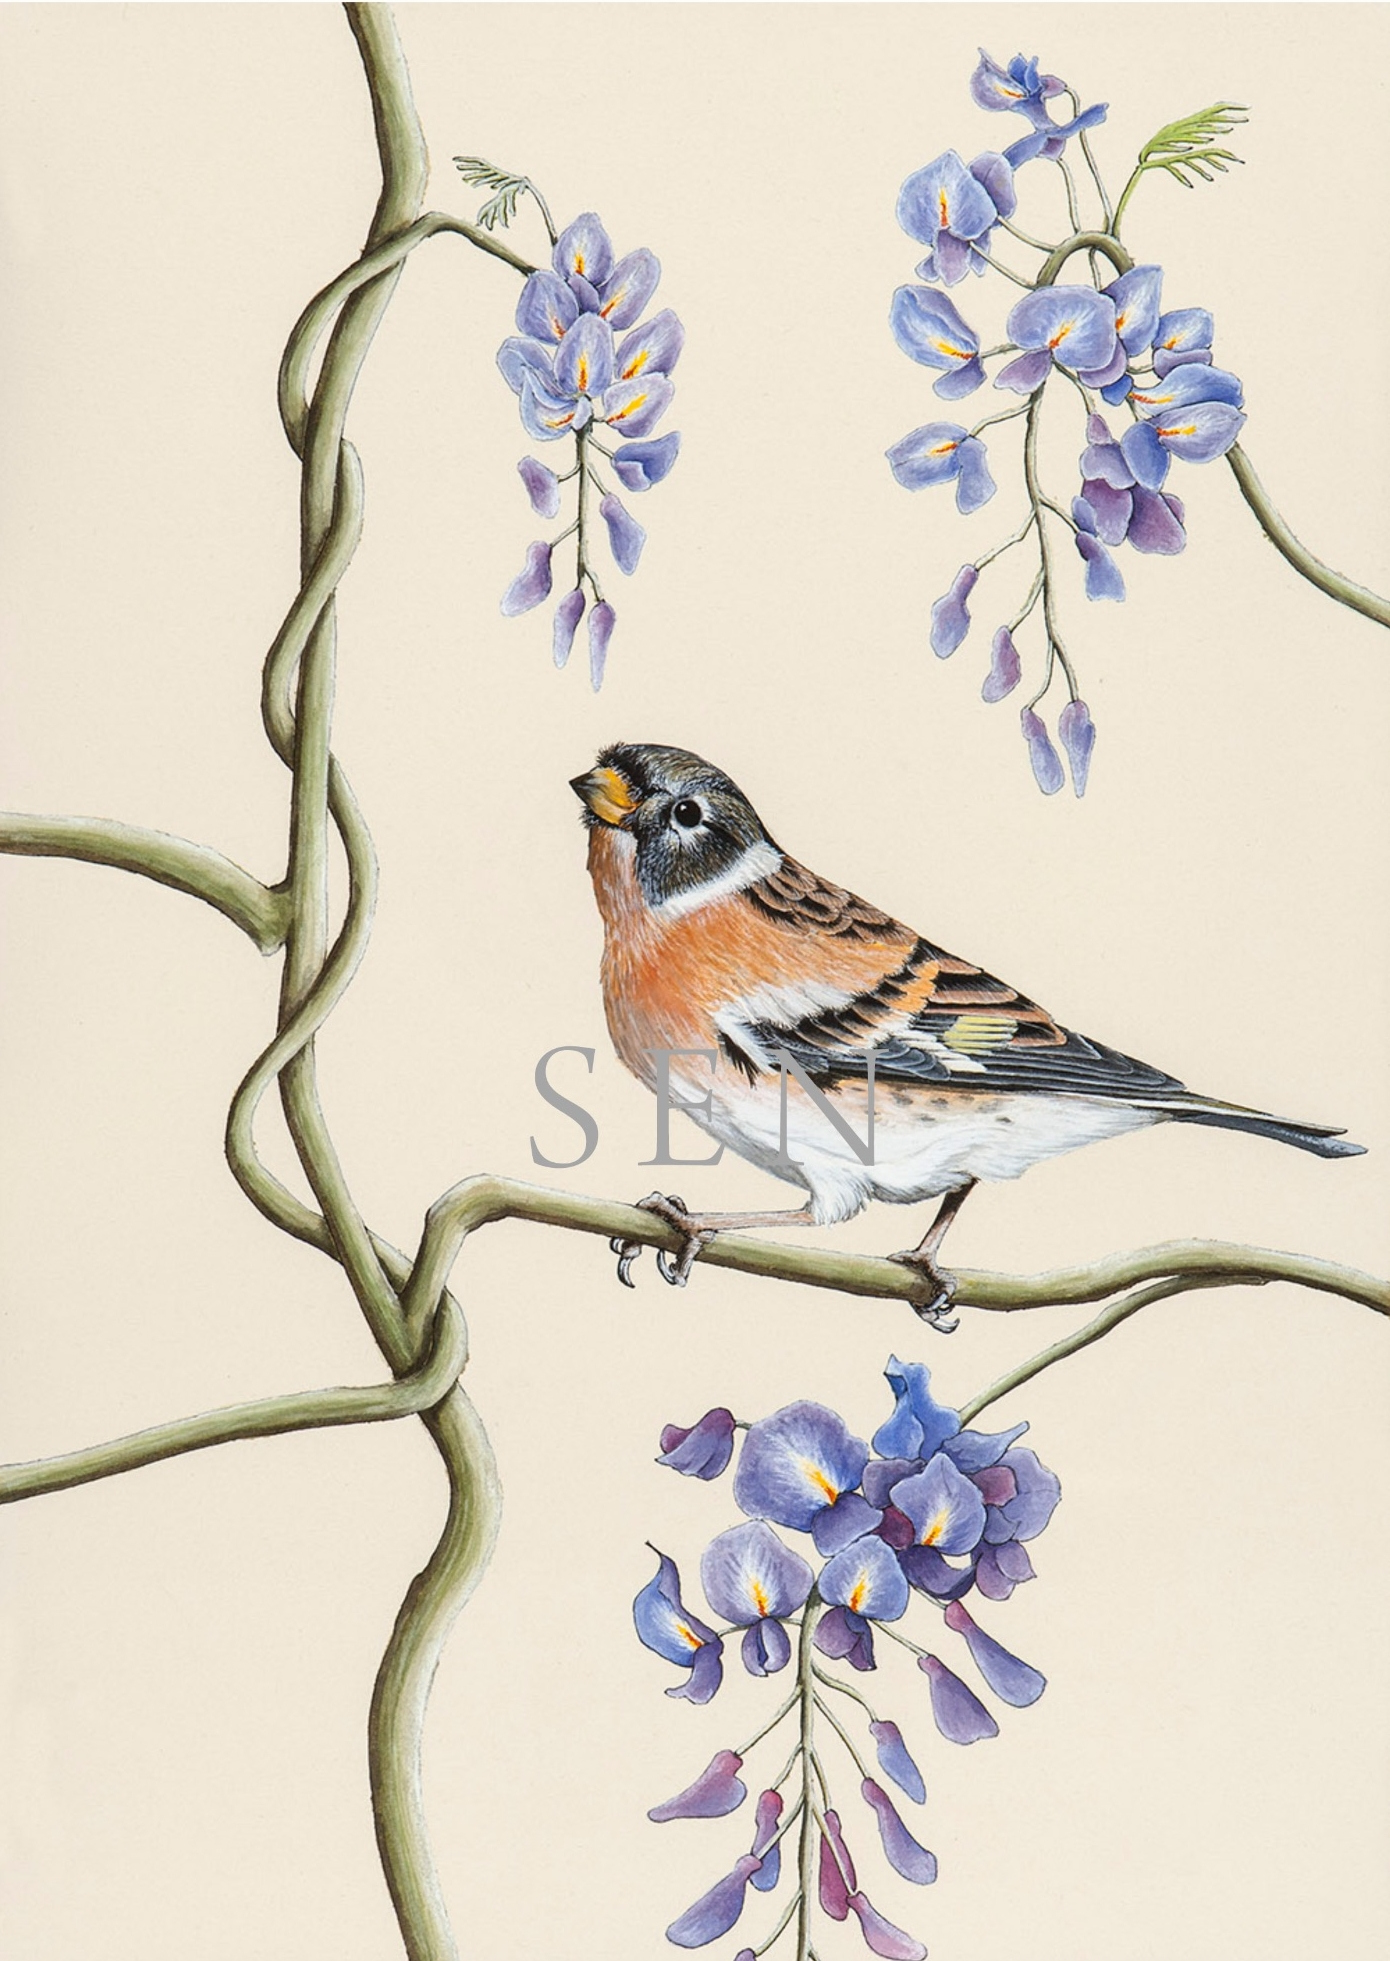 Brambling bird painting